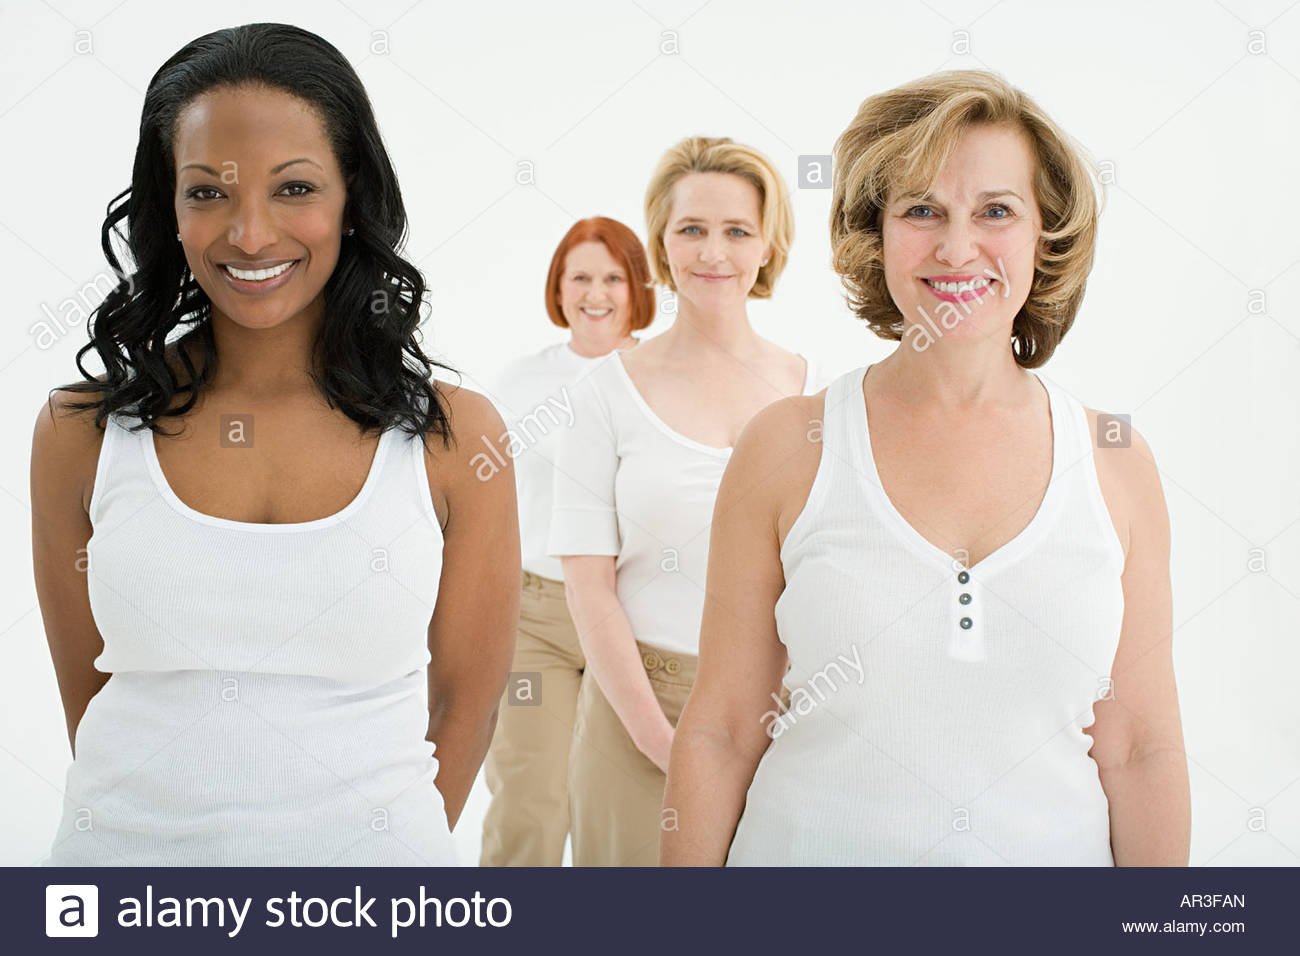 Portrait of women - Stock Image